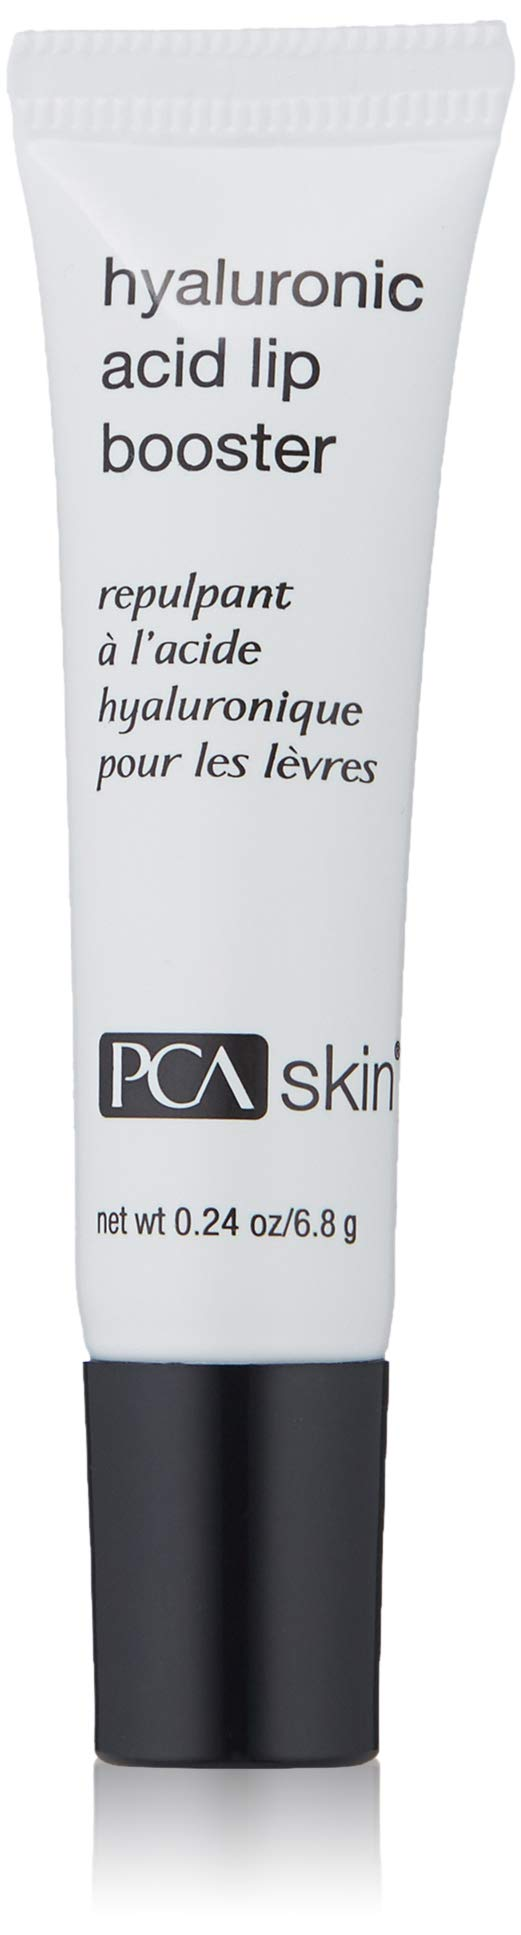 PCA SKIN Hyaluronic Acid Hydrating Lip Booster, 0.24 fl. oz.